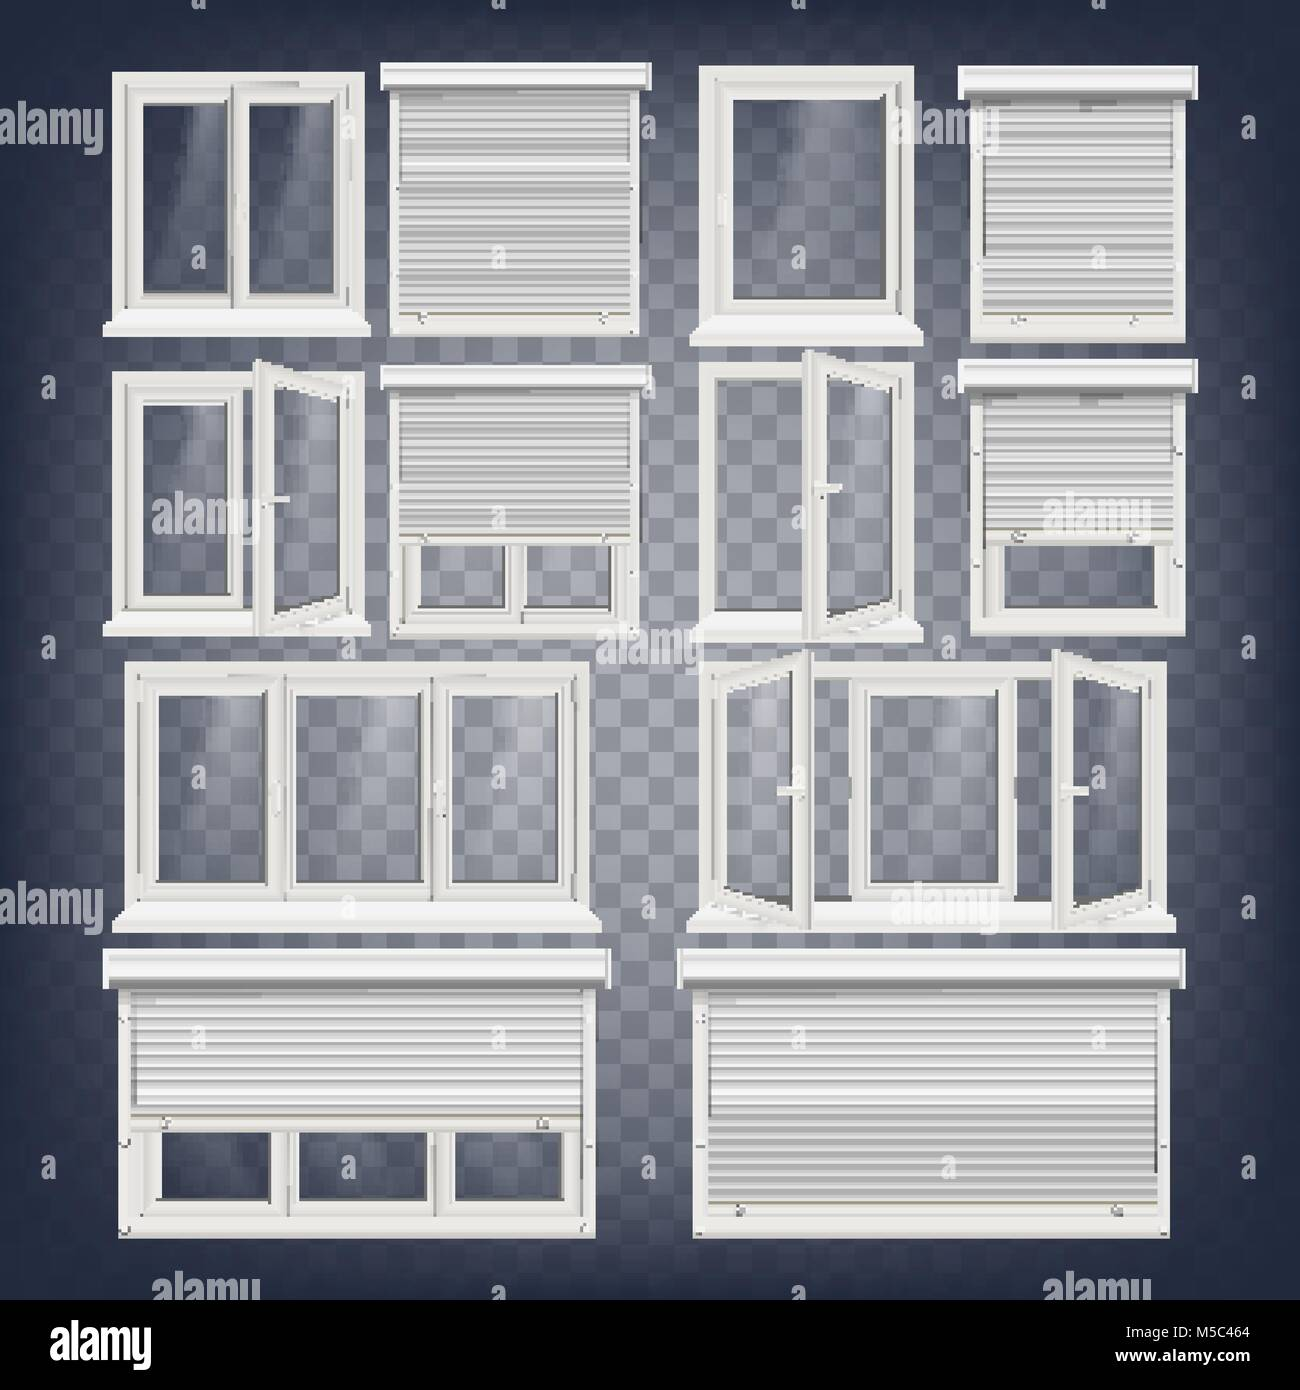 Plastic PVC Windows Set Vector. Different Types. Roller Blind ...